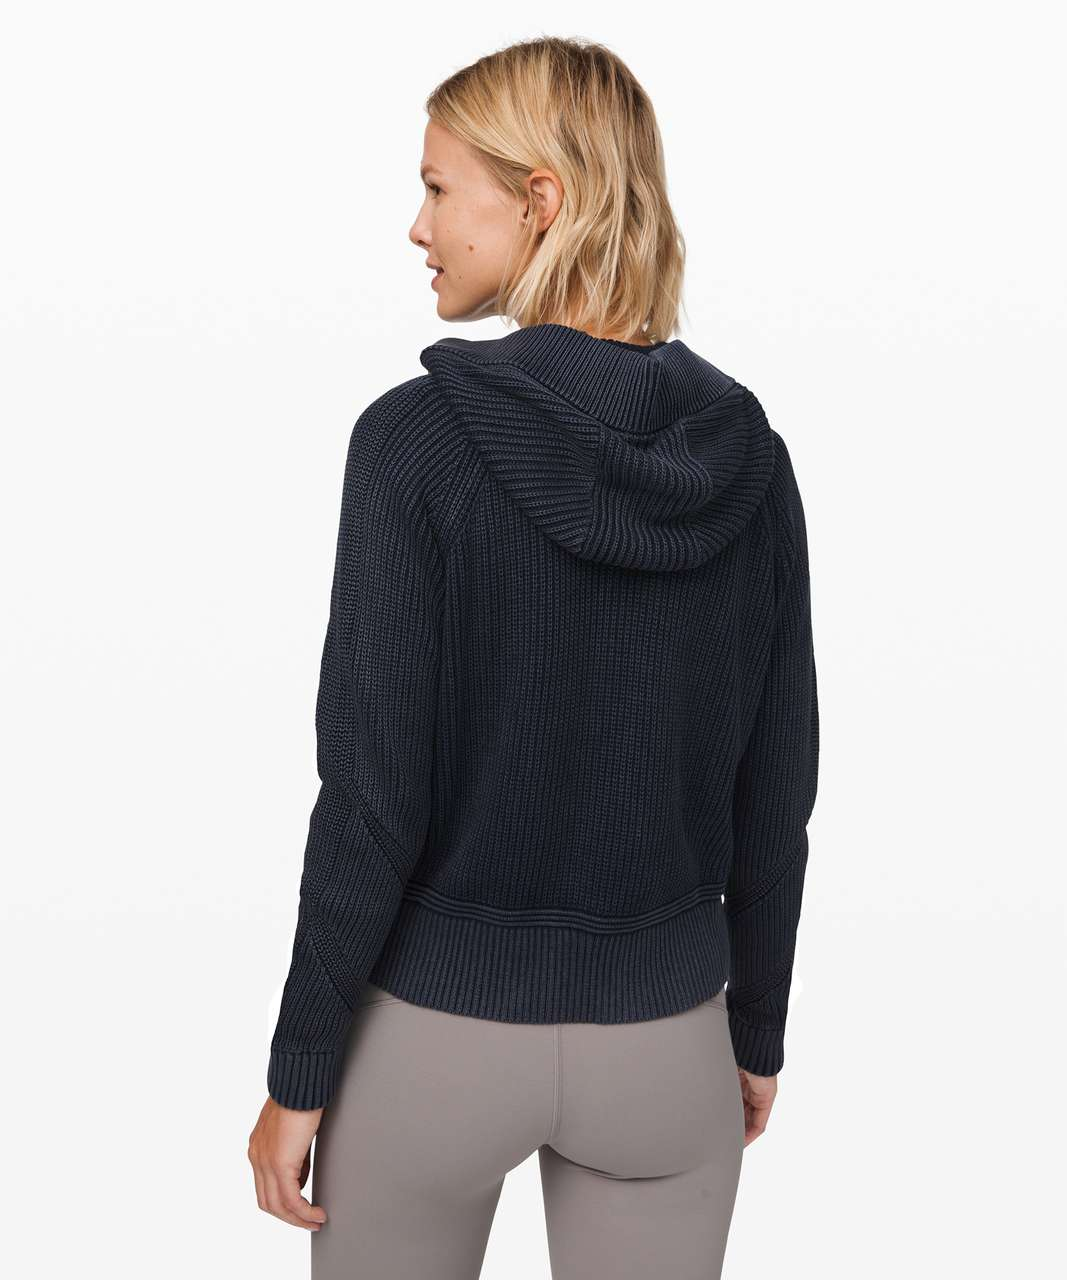 Lululemon Rest Assured Full Zip Hoodie - Washed Midnight Navy